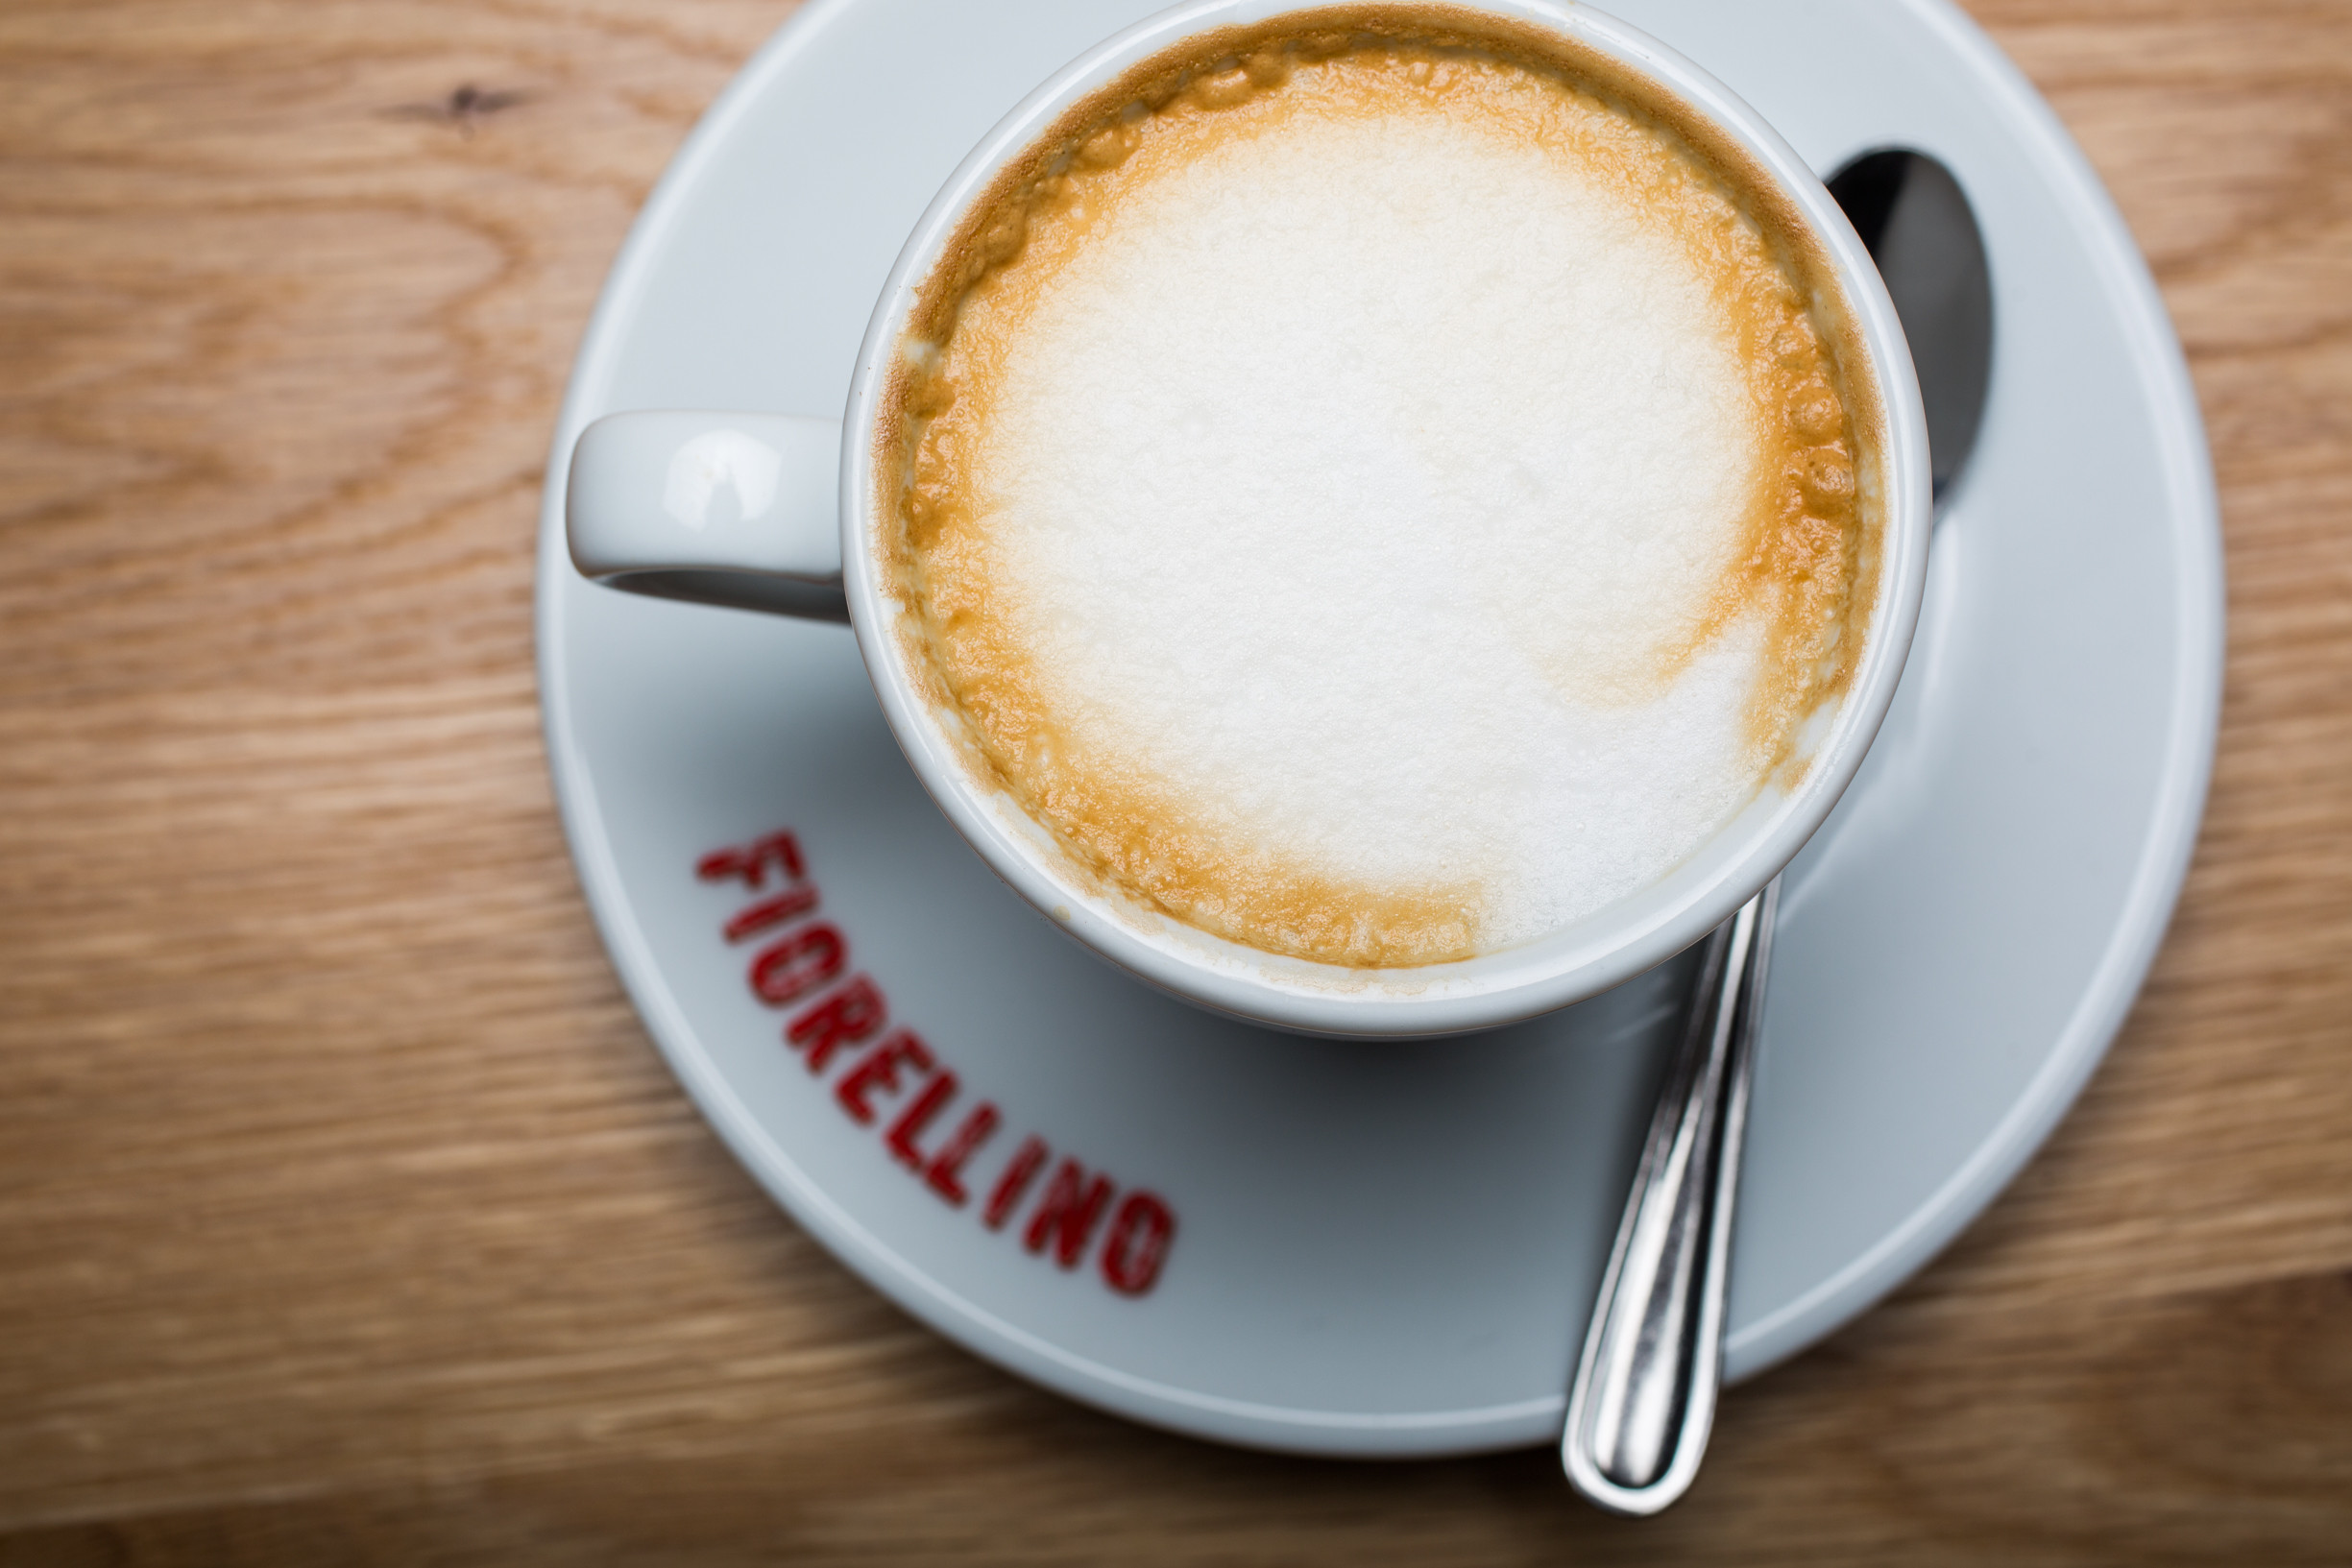 café coffee from Fiorellino italian restaurant from montreal by blogger mademoiselle jules